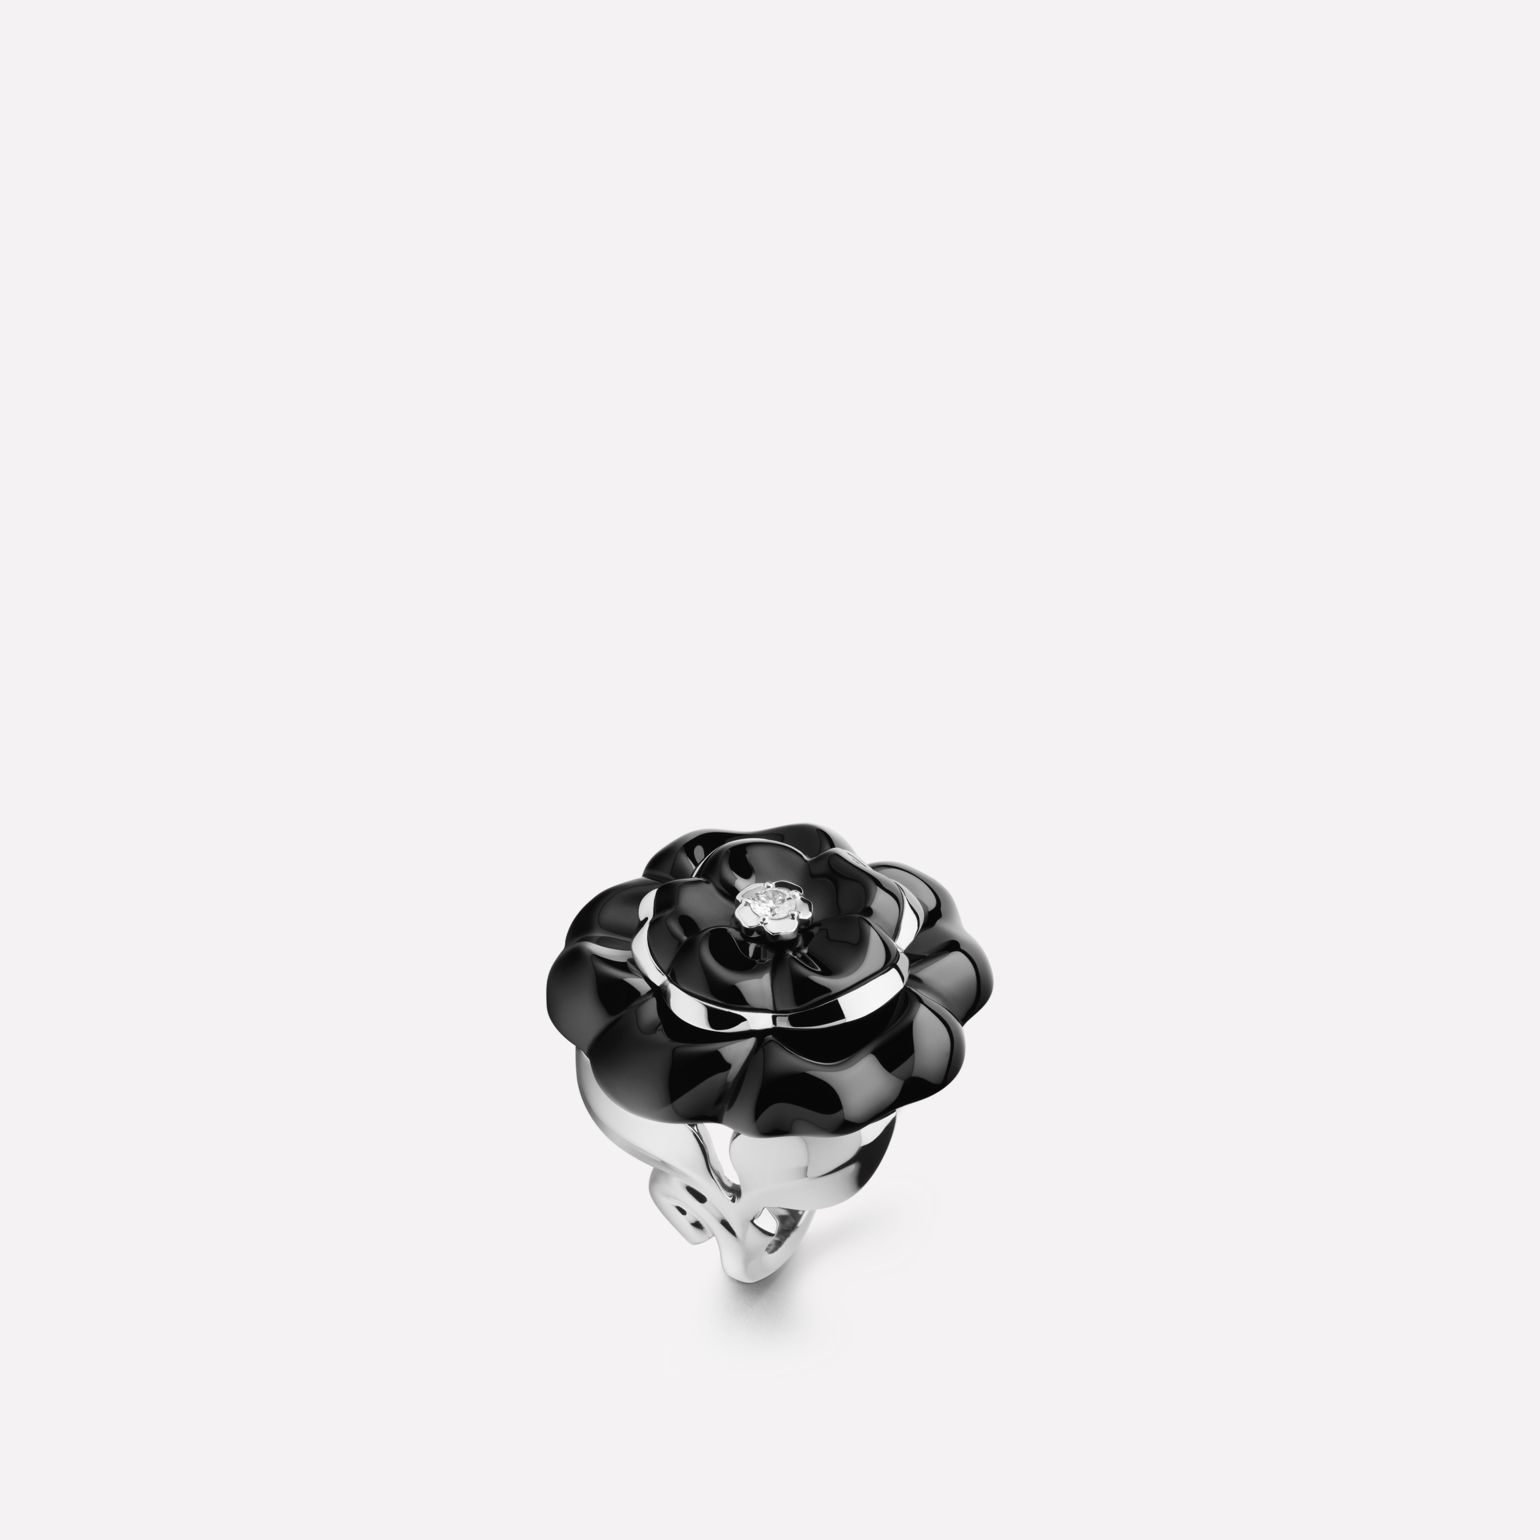 Camélia ring Camélia Galbé ring in black ceramic, 18K white gold with one center diamond